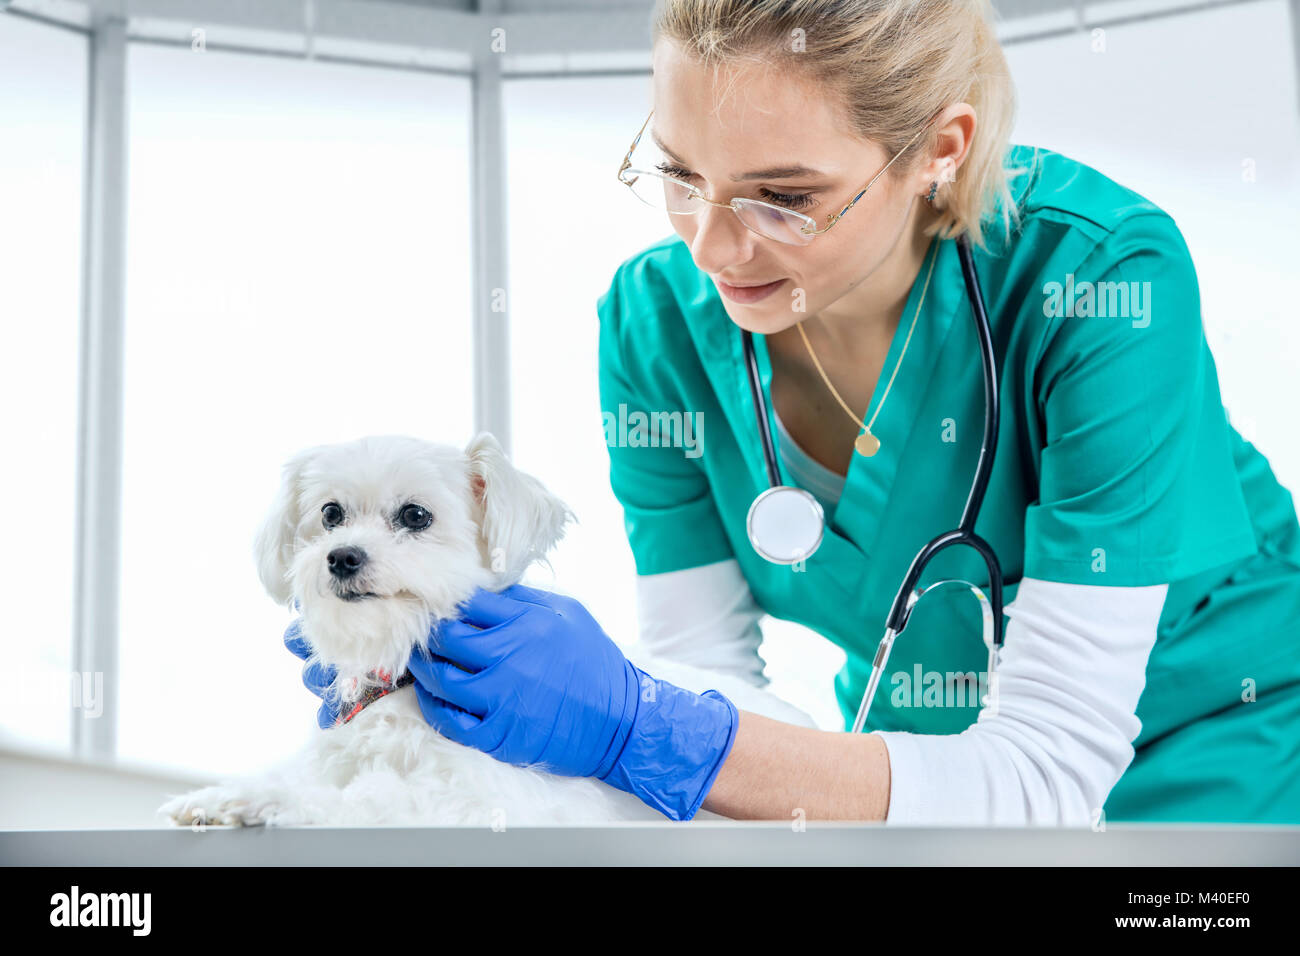 Female vet examines the fur of a dog - Stock Image